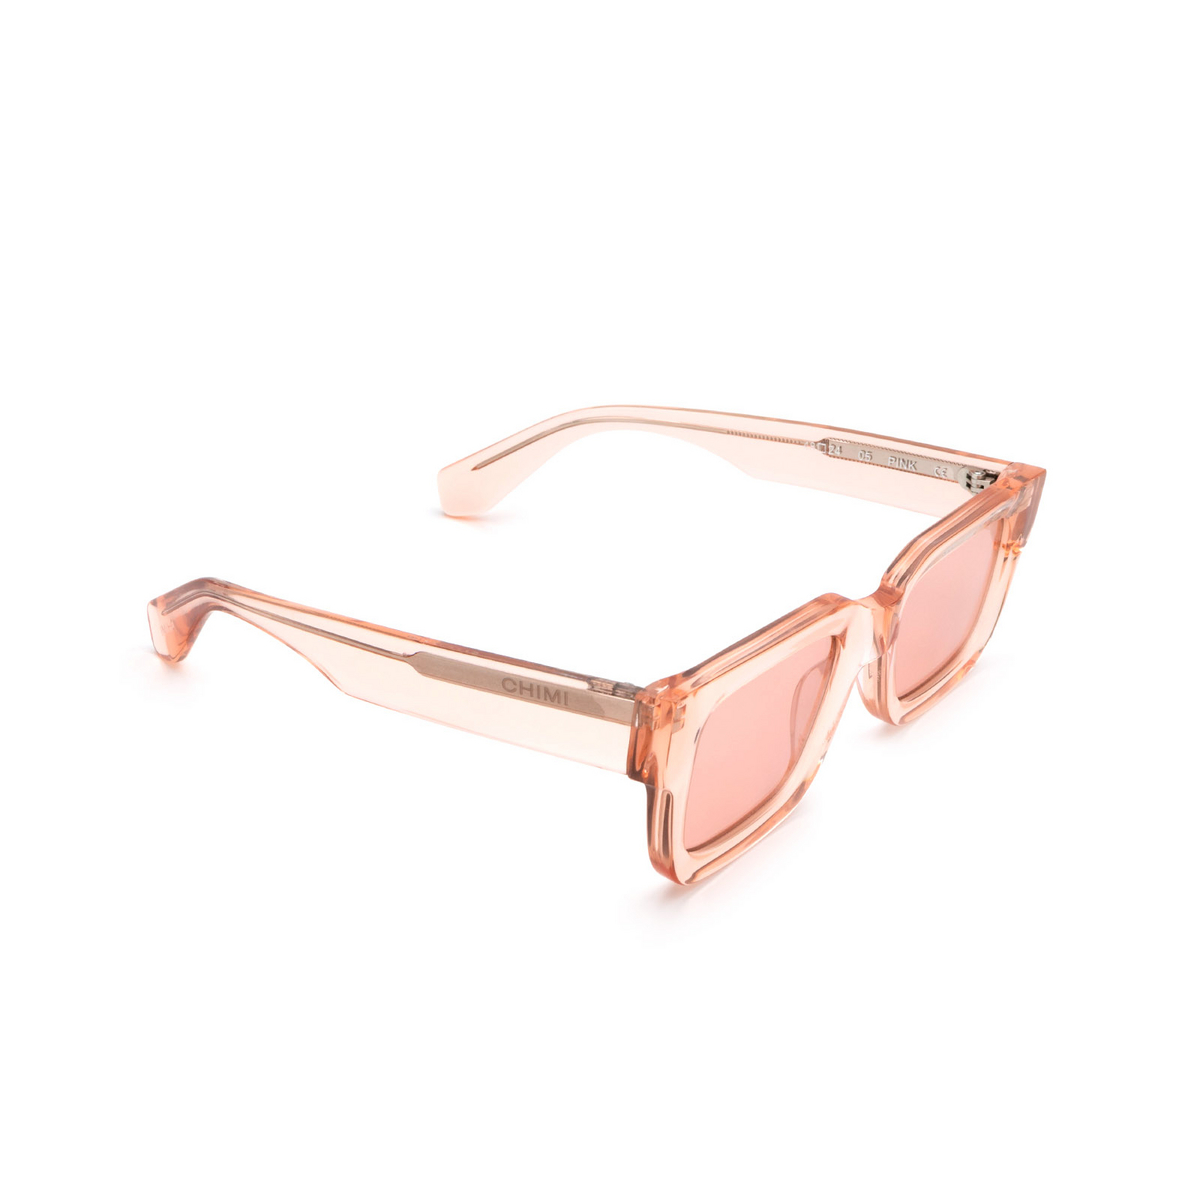 Chimi® Rectangle Sunglasses: 05 color Pink - three-quarters view.